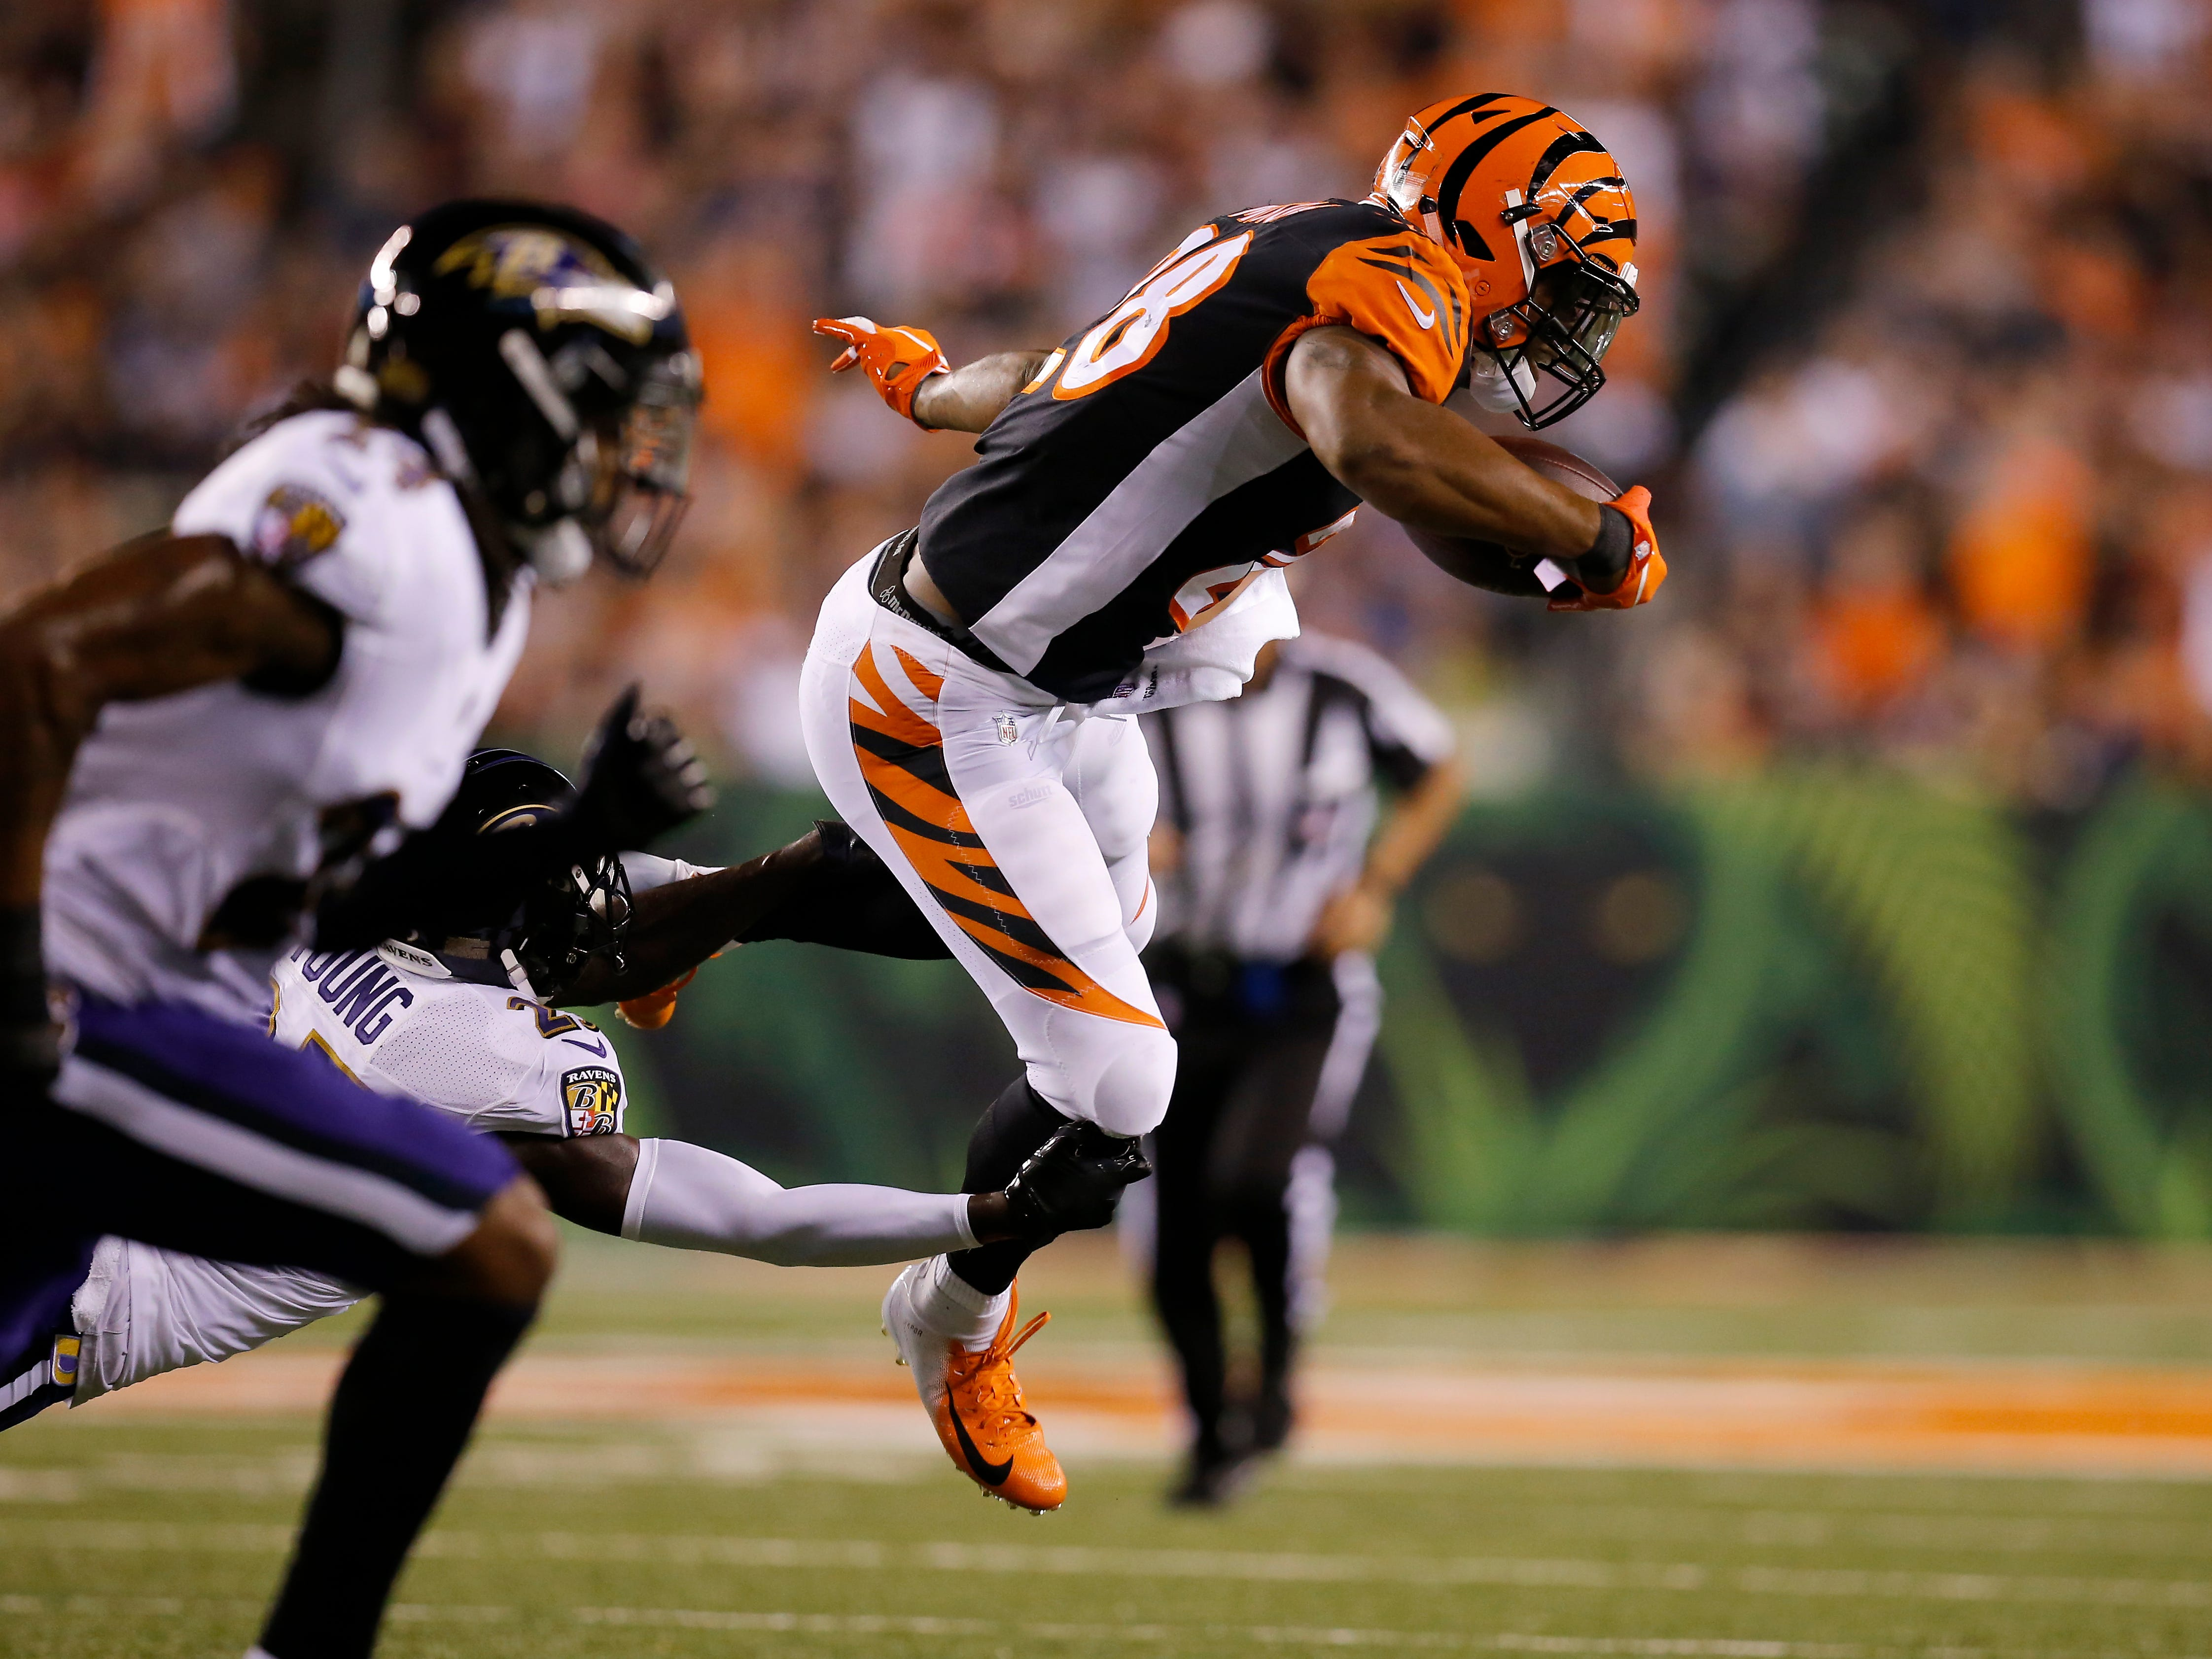 Cincinnati Bengals running back Joe Mixon (28) is tripped up leaping from a tackle in the first quarter of the NFL Week 2 game between the Cincinnati Bengals and the Baltimore Ravens at Paul Brown Stadium in downtown Cincinnati on Thursday, Sept. 13, 2018. The Bengals led 28-14 at halftime.